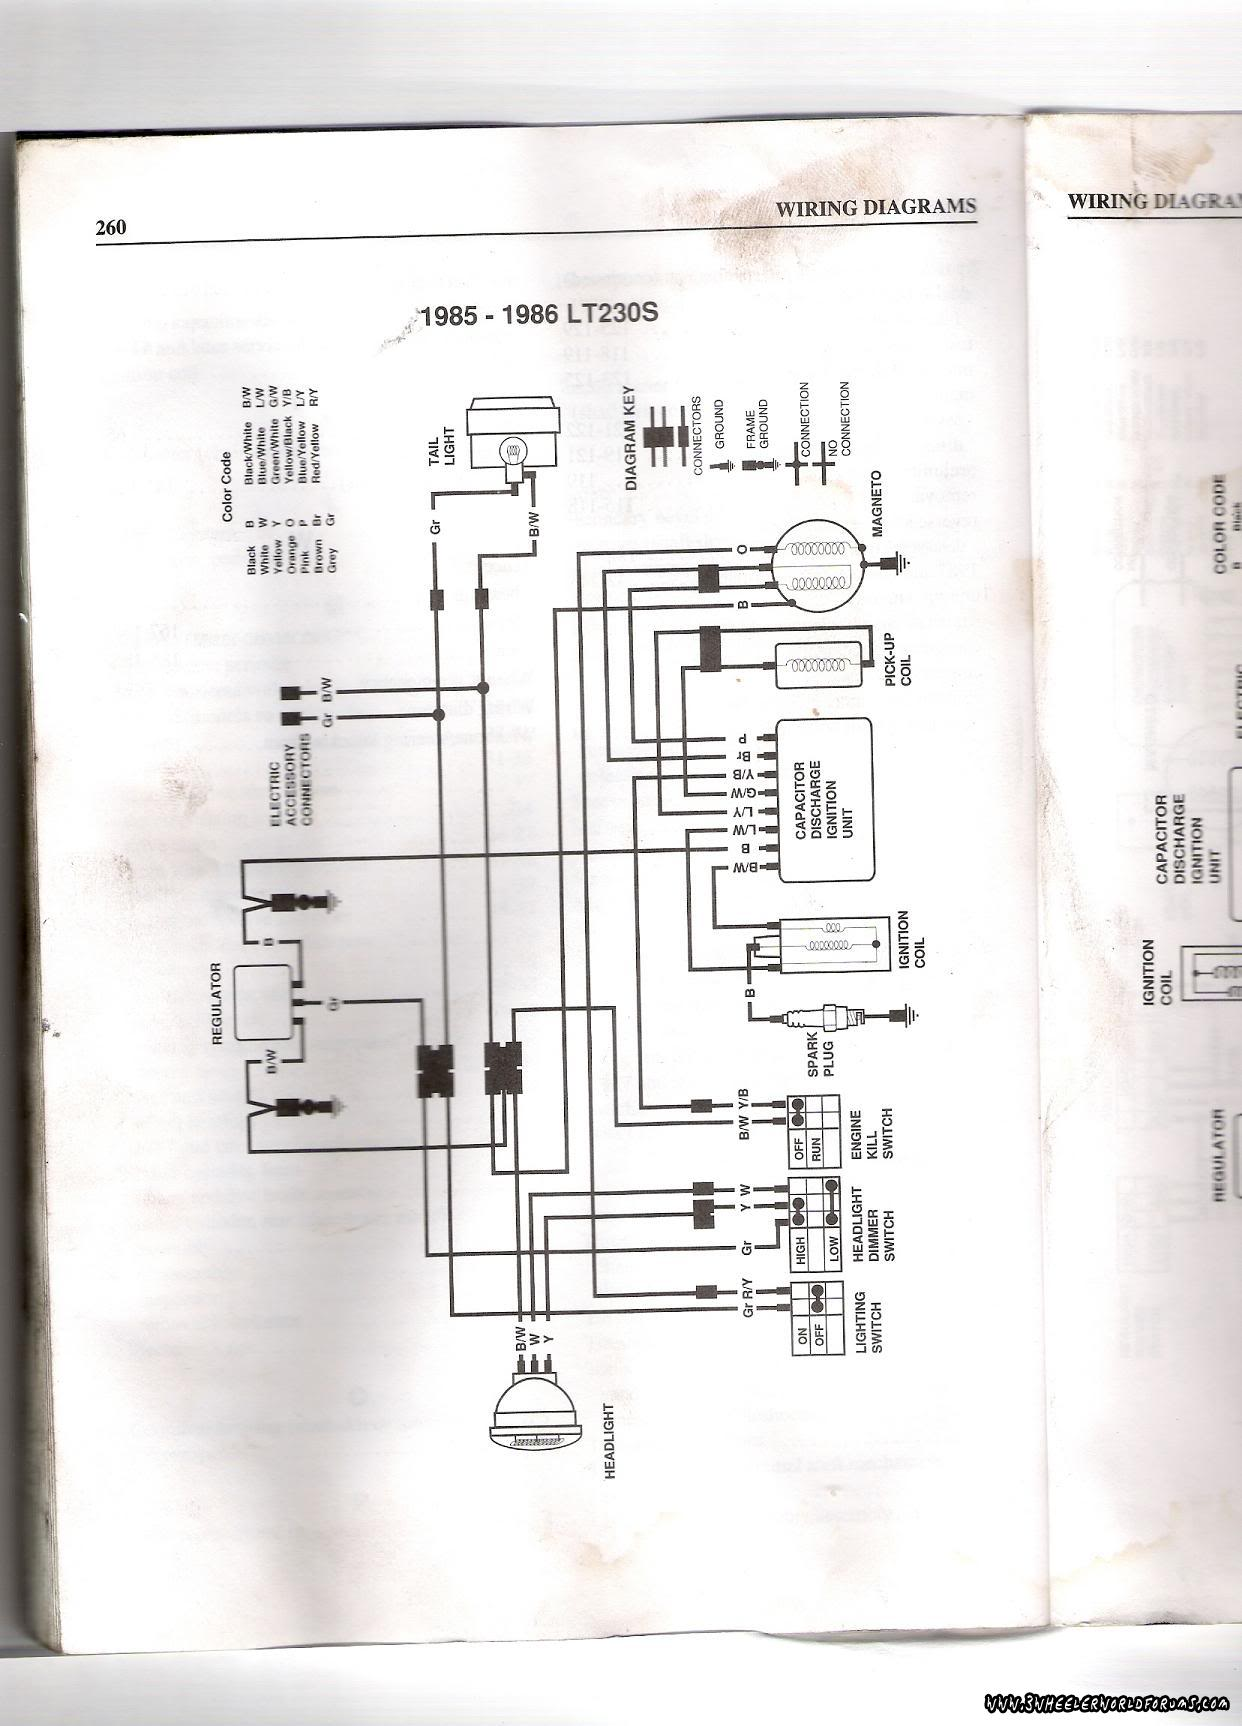 yamaha warrior wiring diagram vl headlight 1986 suzuki lt 230 won't start - atvconnection.com atv enthusiast community